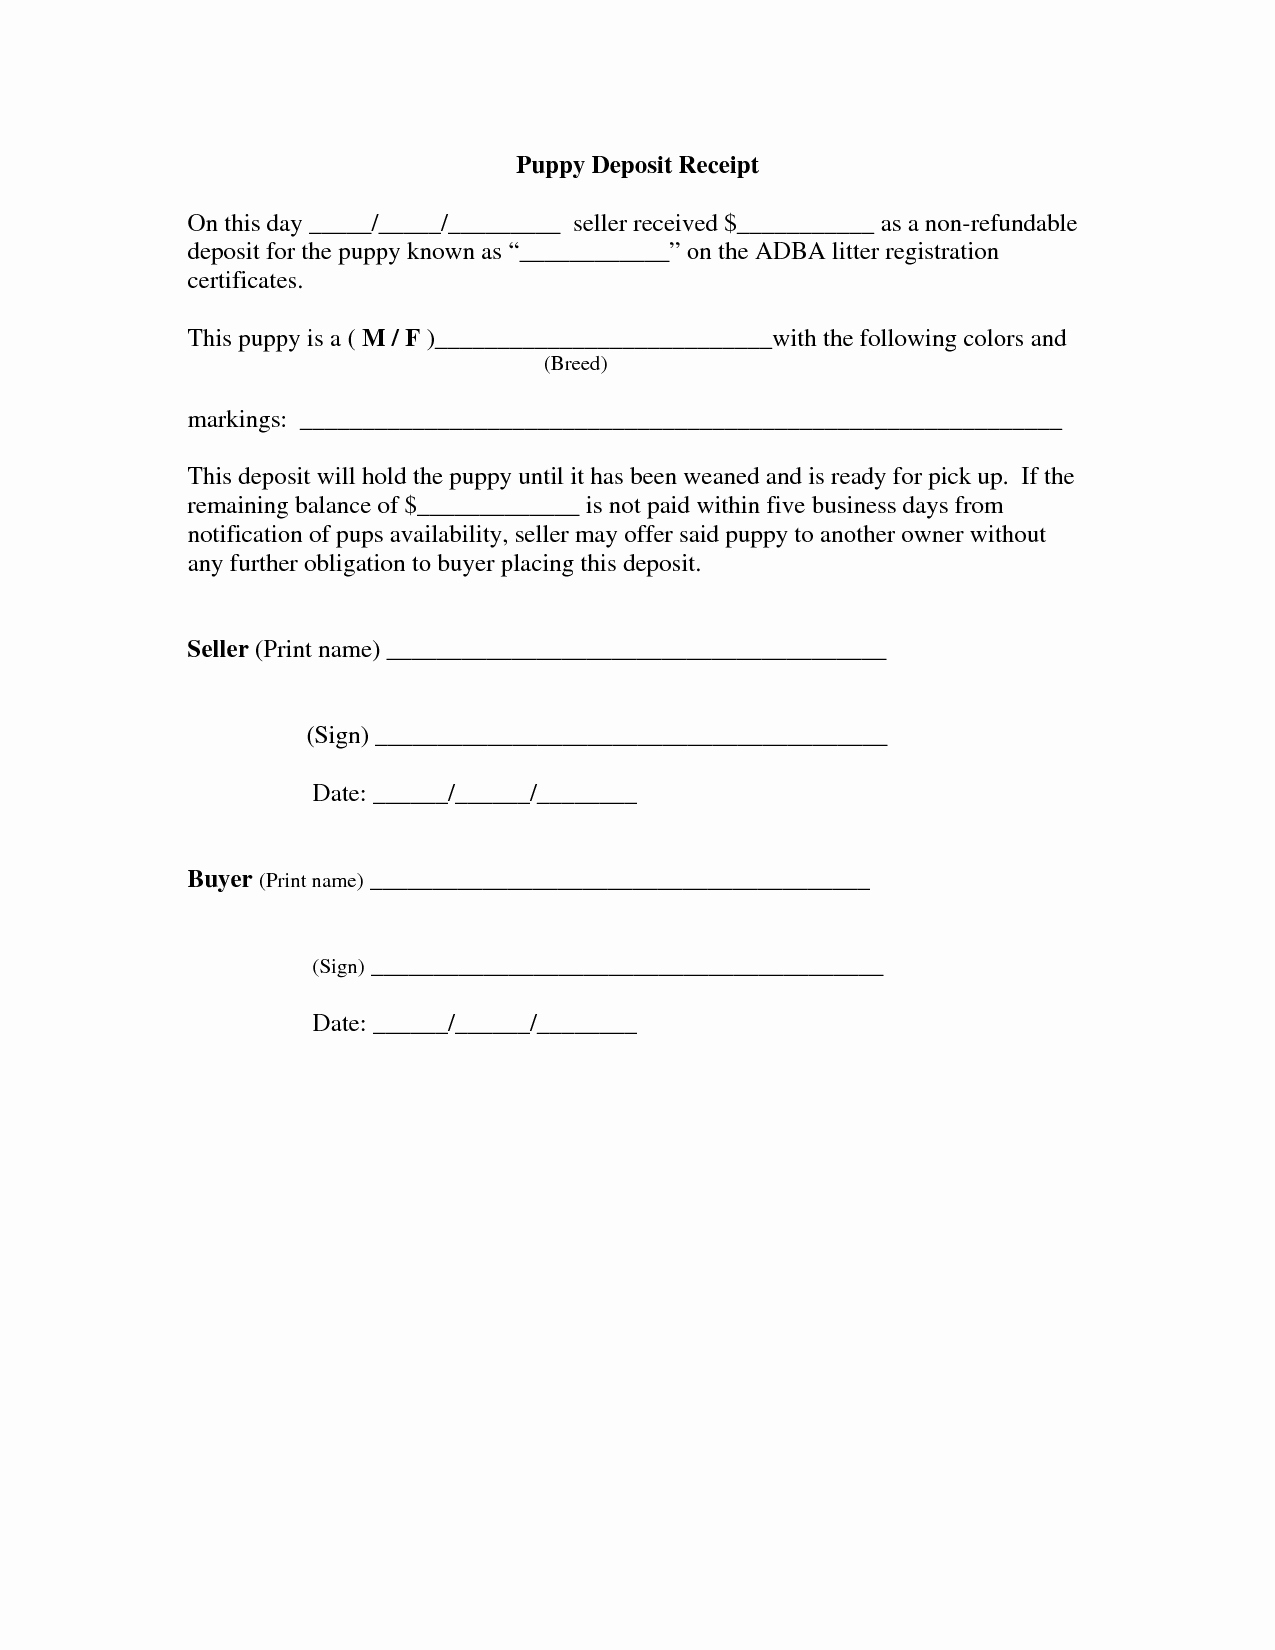 Puppy Sales Contract Template Awesome Of Car Deposit Agreement Template Car Sale Deposit